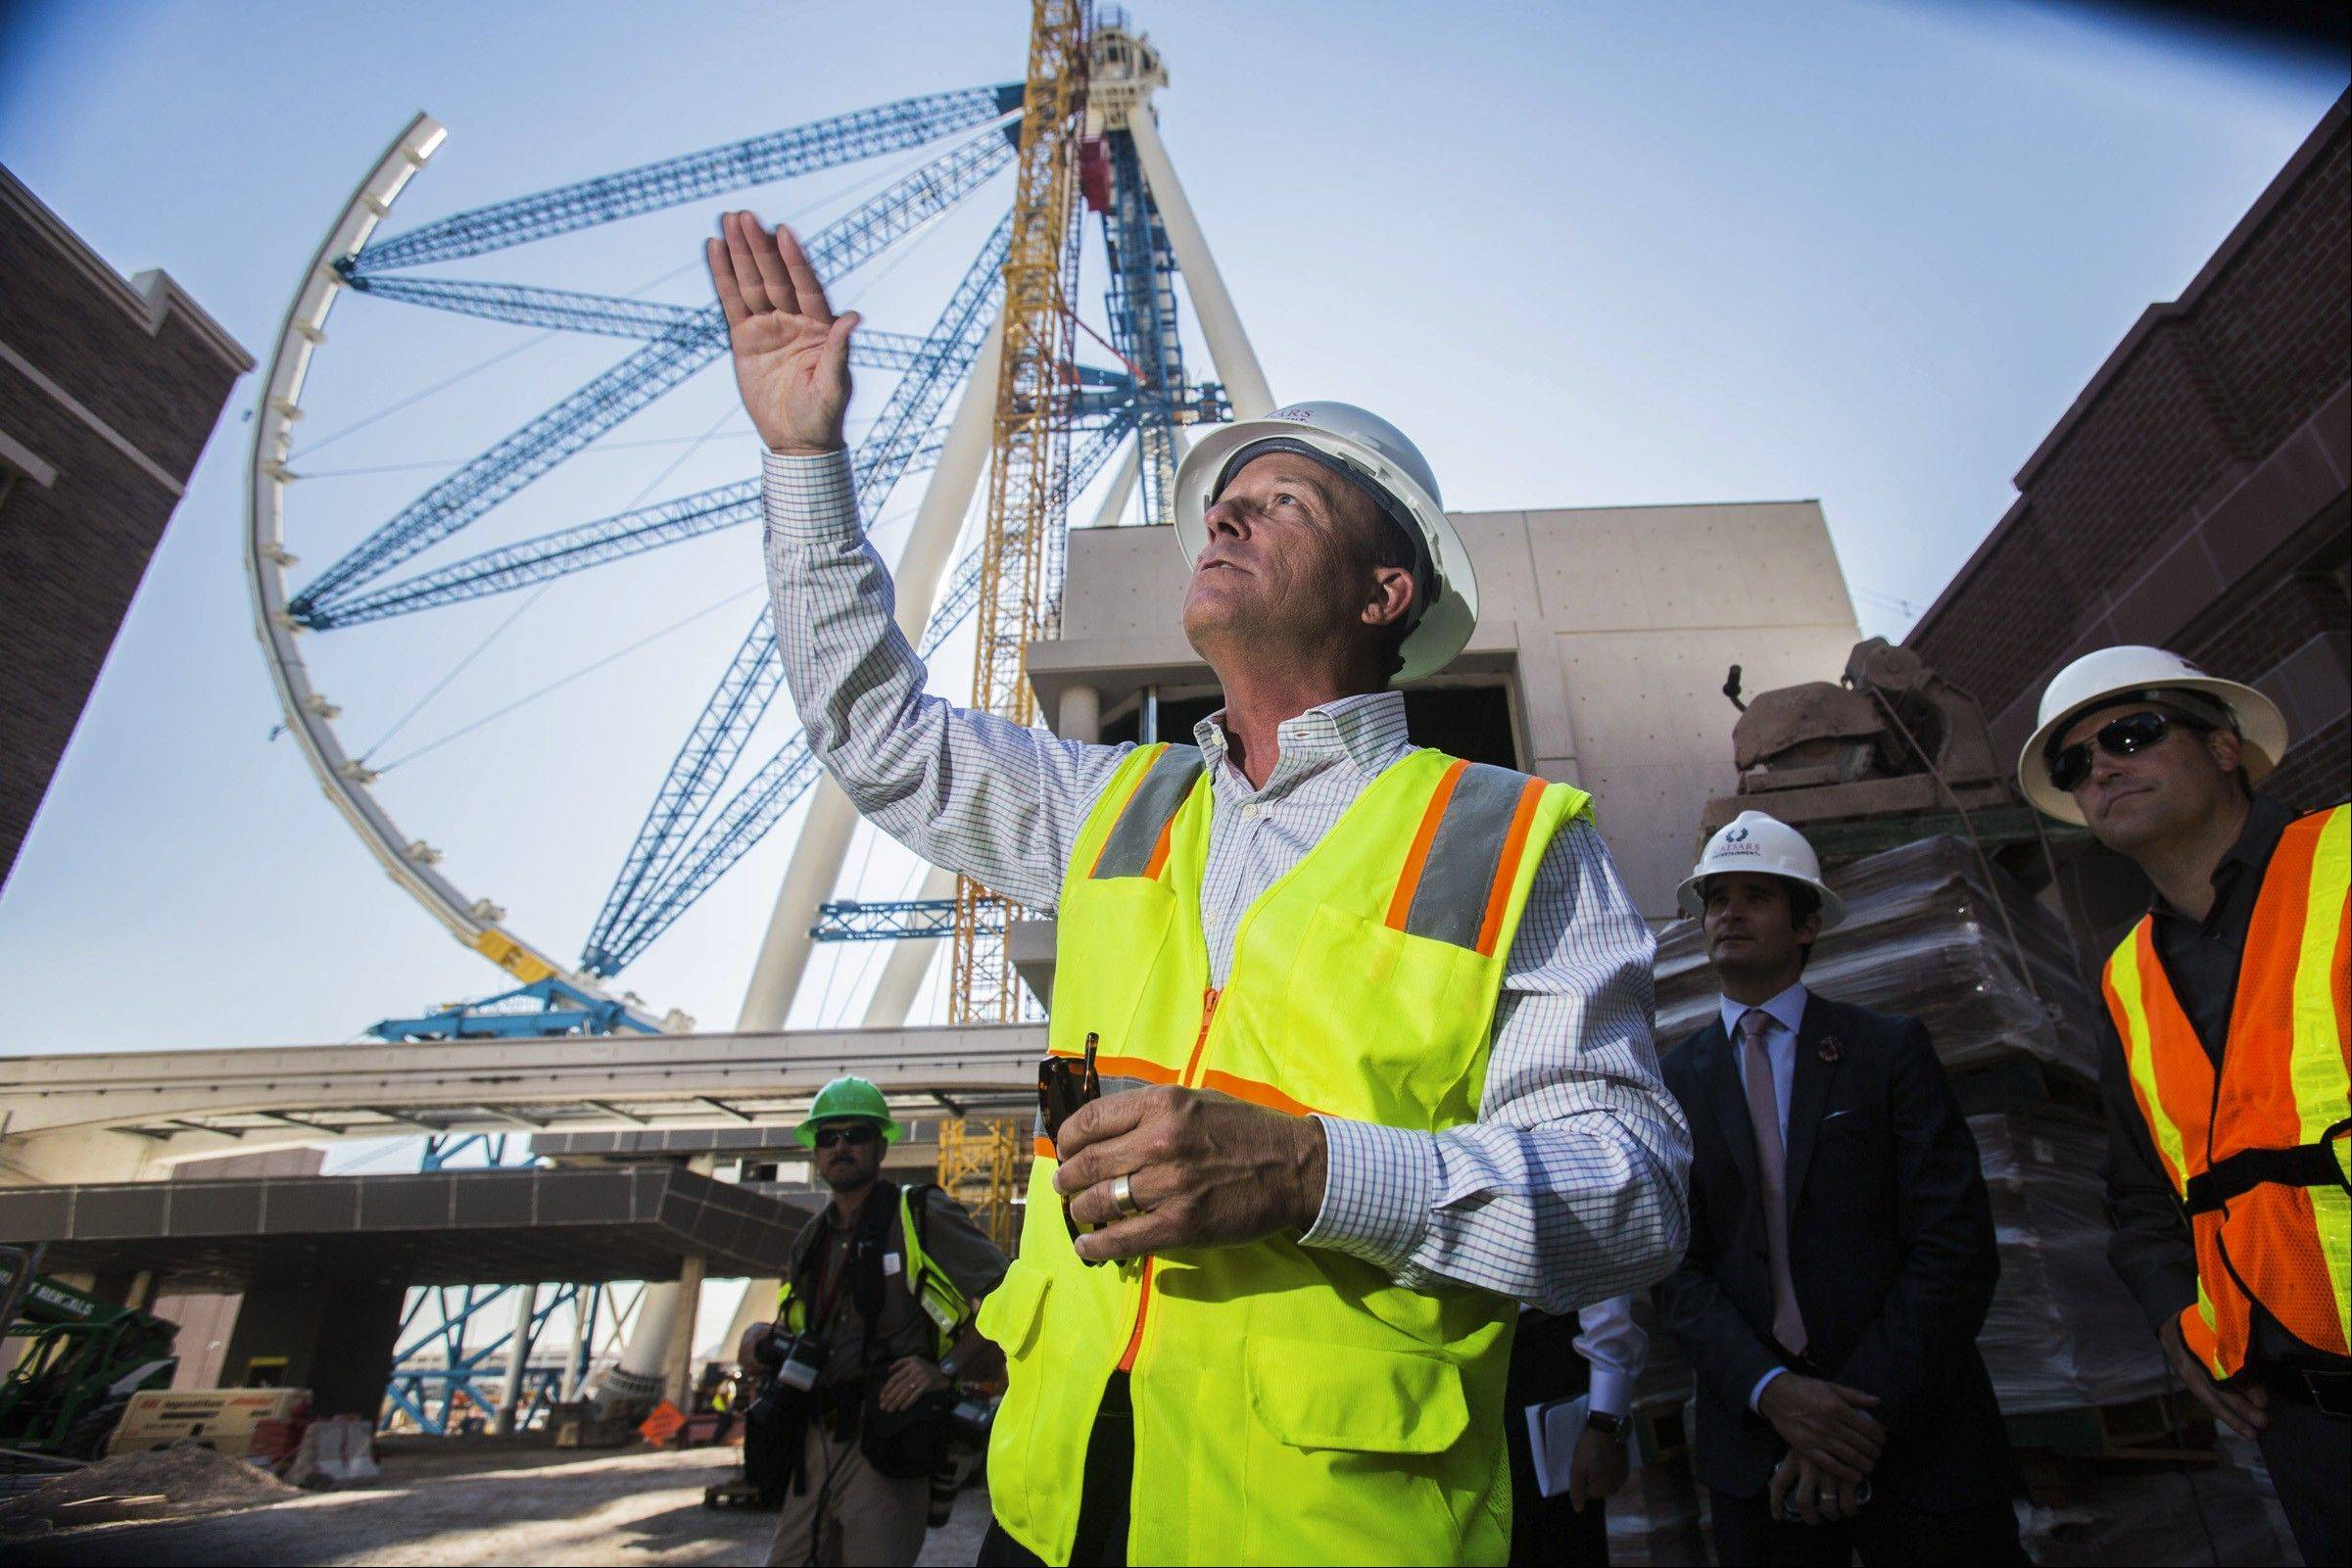 The world's tallest observation wheel, know as the High Roller is seen behind David Codiga, executive project director for The Linq, at The Linq construction site on Las Vegas Boulevard.